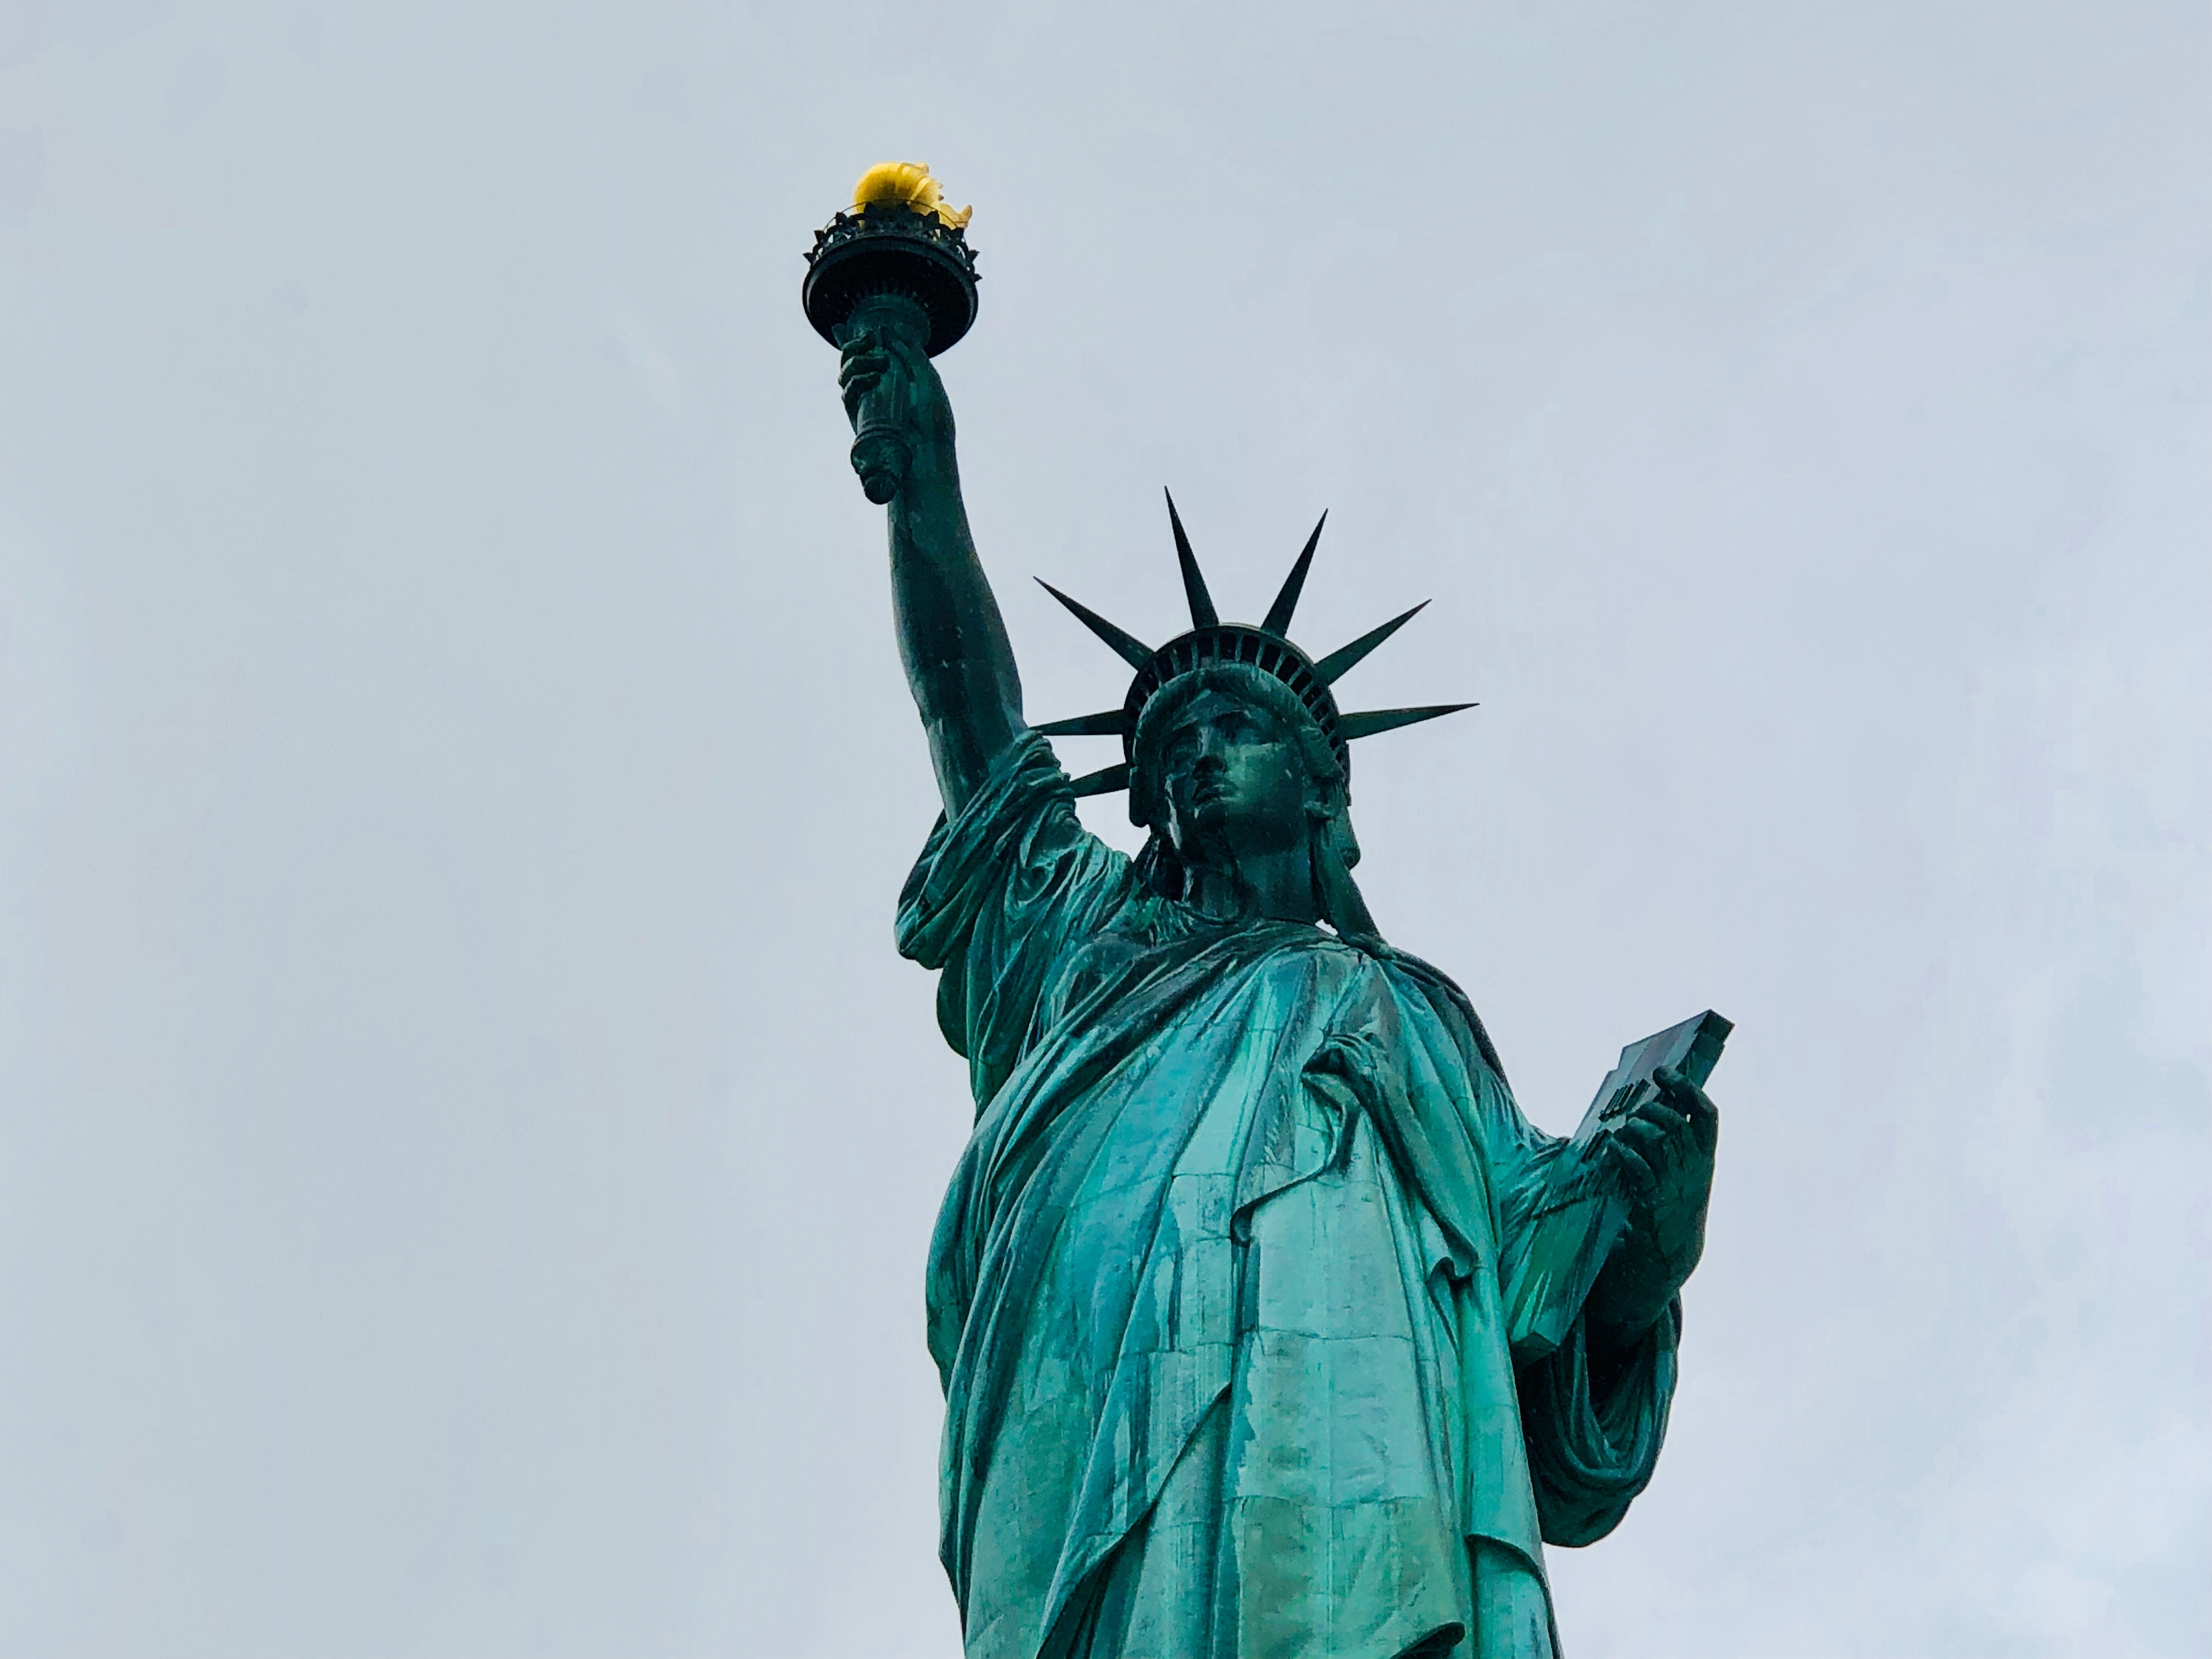 photo of Statue of Liberty during daytime